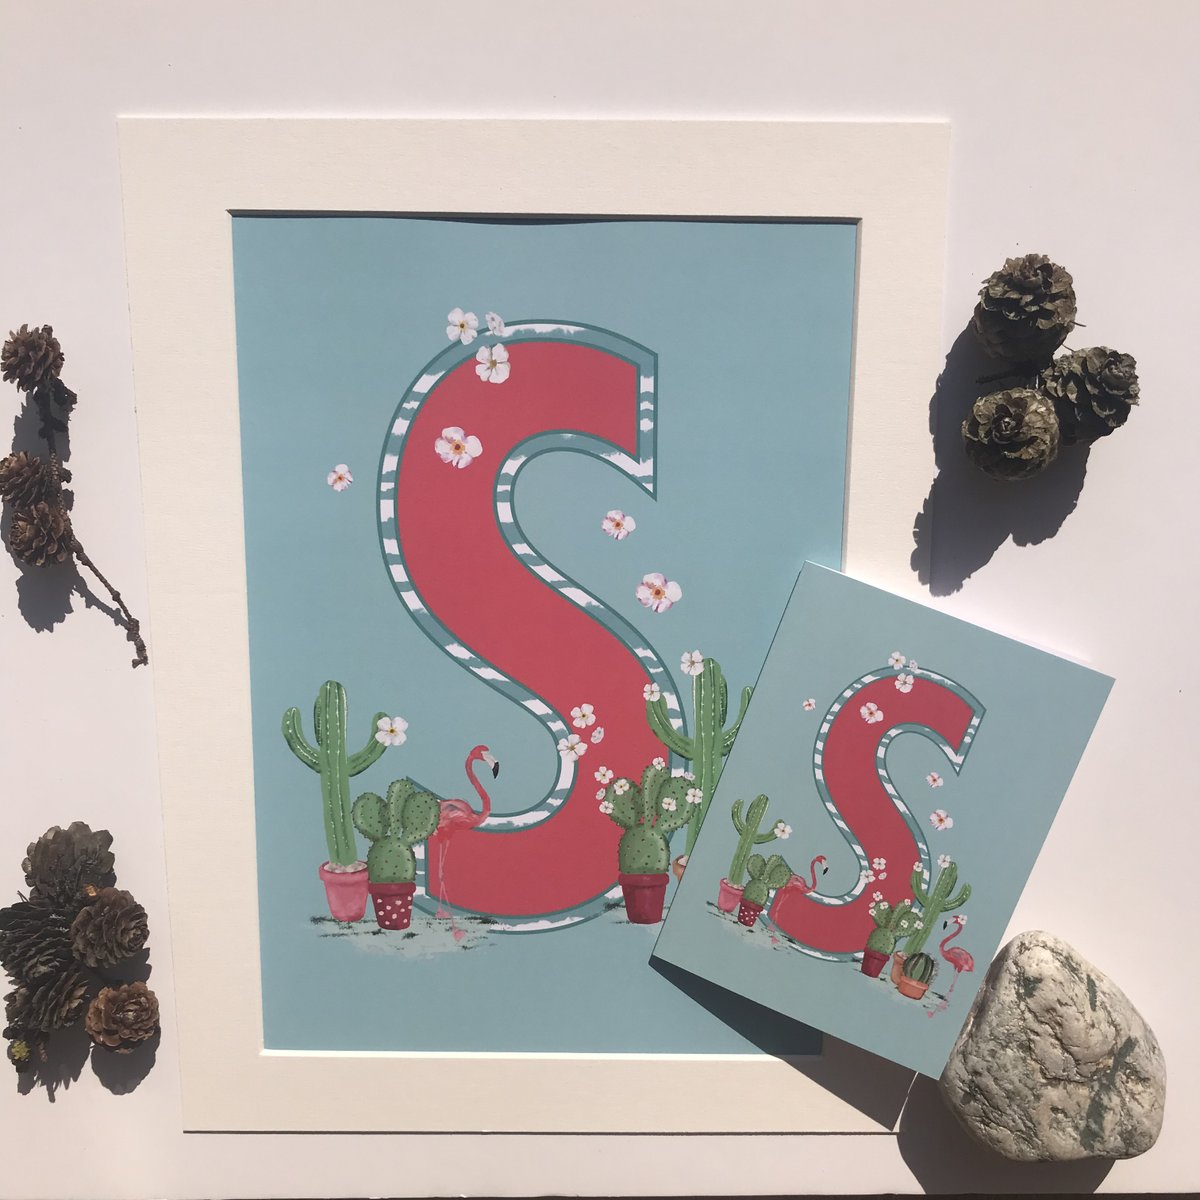 "It's been a busy day photographing the new Alphabet A4 print and greeting card gifts set... I just had to post a photograph of an ""S""!  #new #newdesigns #sarahbdesign #alphabet #giftset #besidethesea #formby #crosby #southportpic.twitter.com/0Pv2a5o8eD"